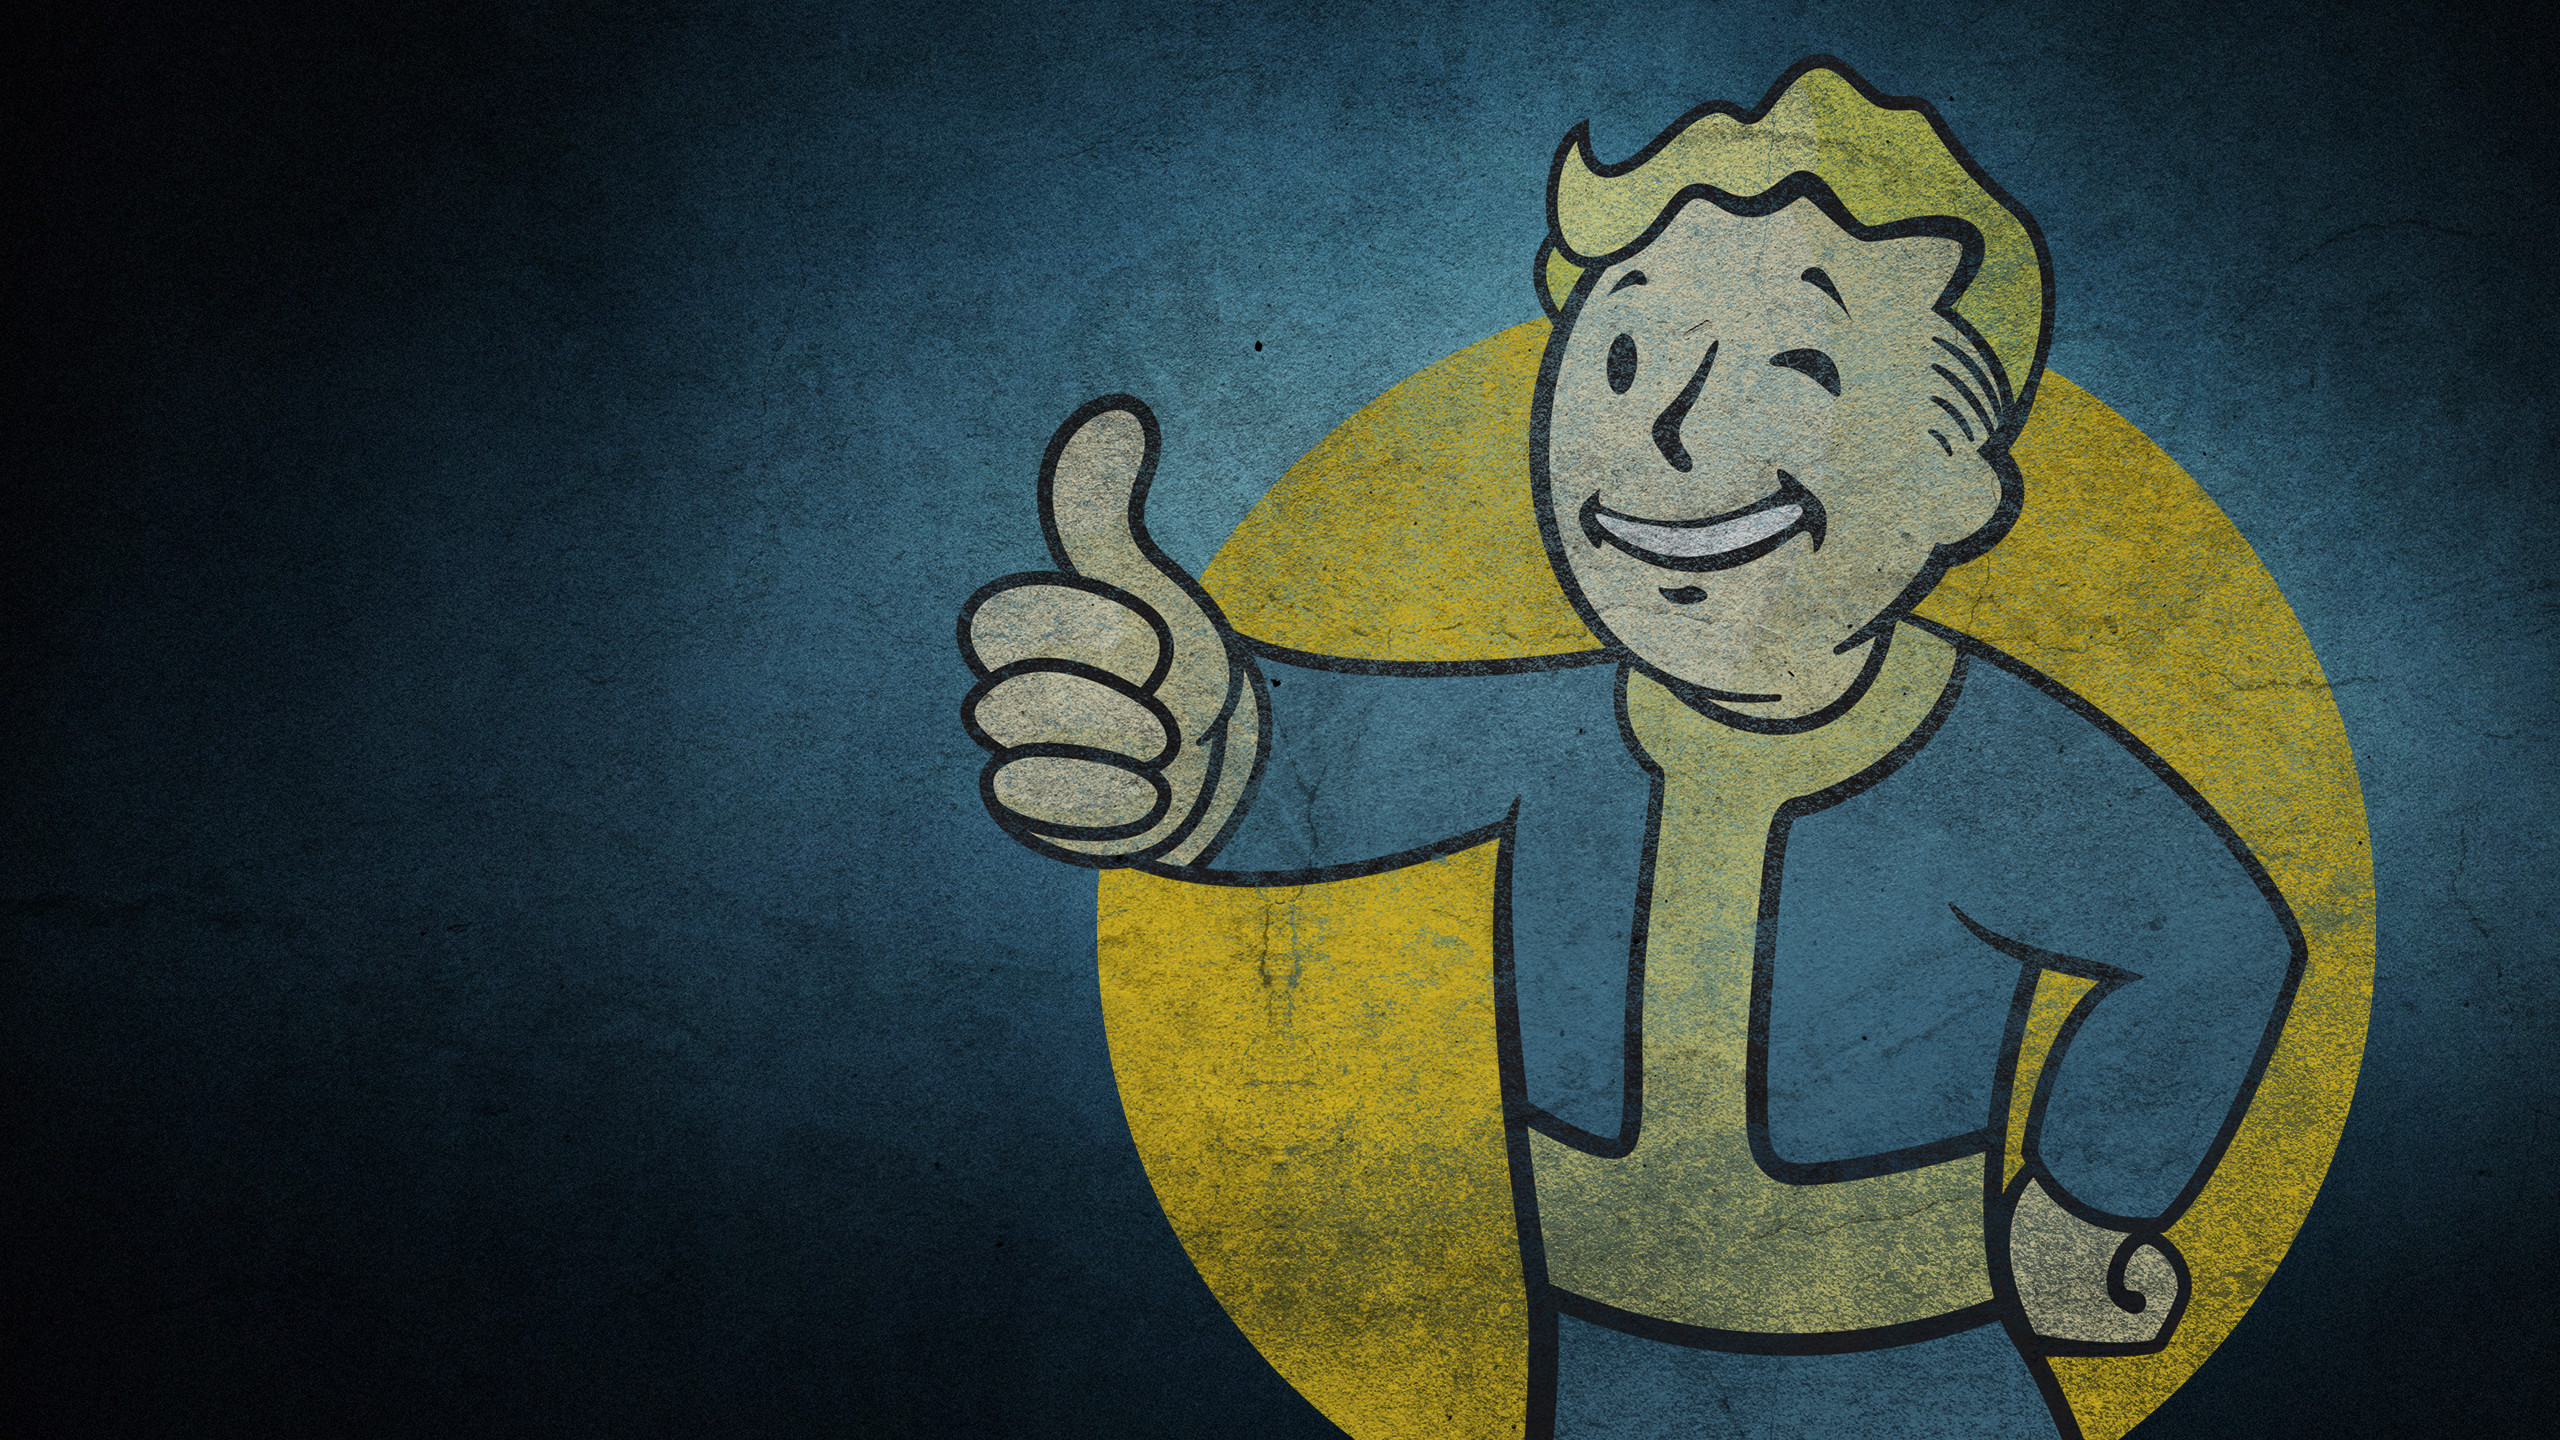 2560x1440 Vault Boy · HD Wallpaper | Background Image ID:893453.  Video Game Fallout  4